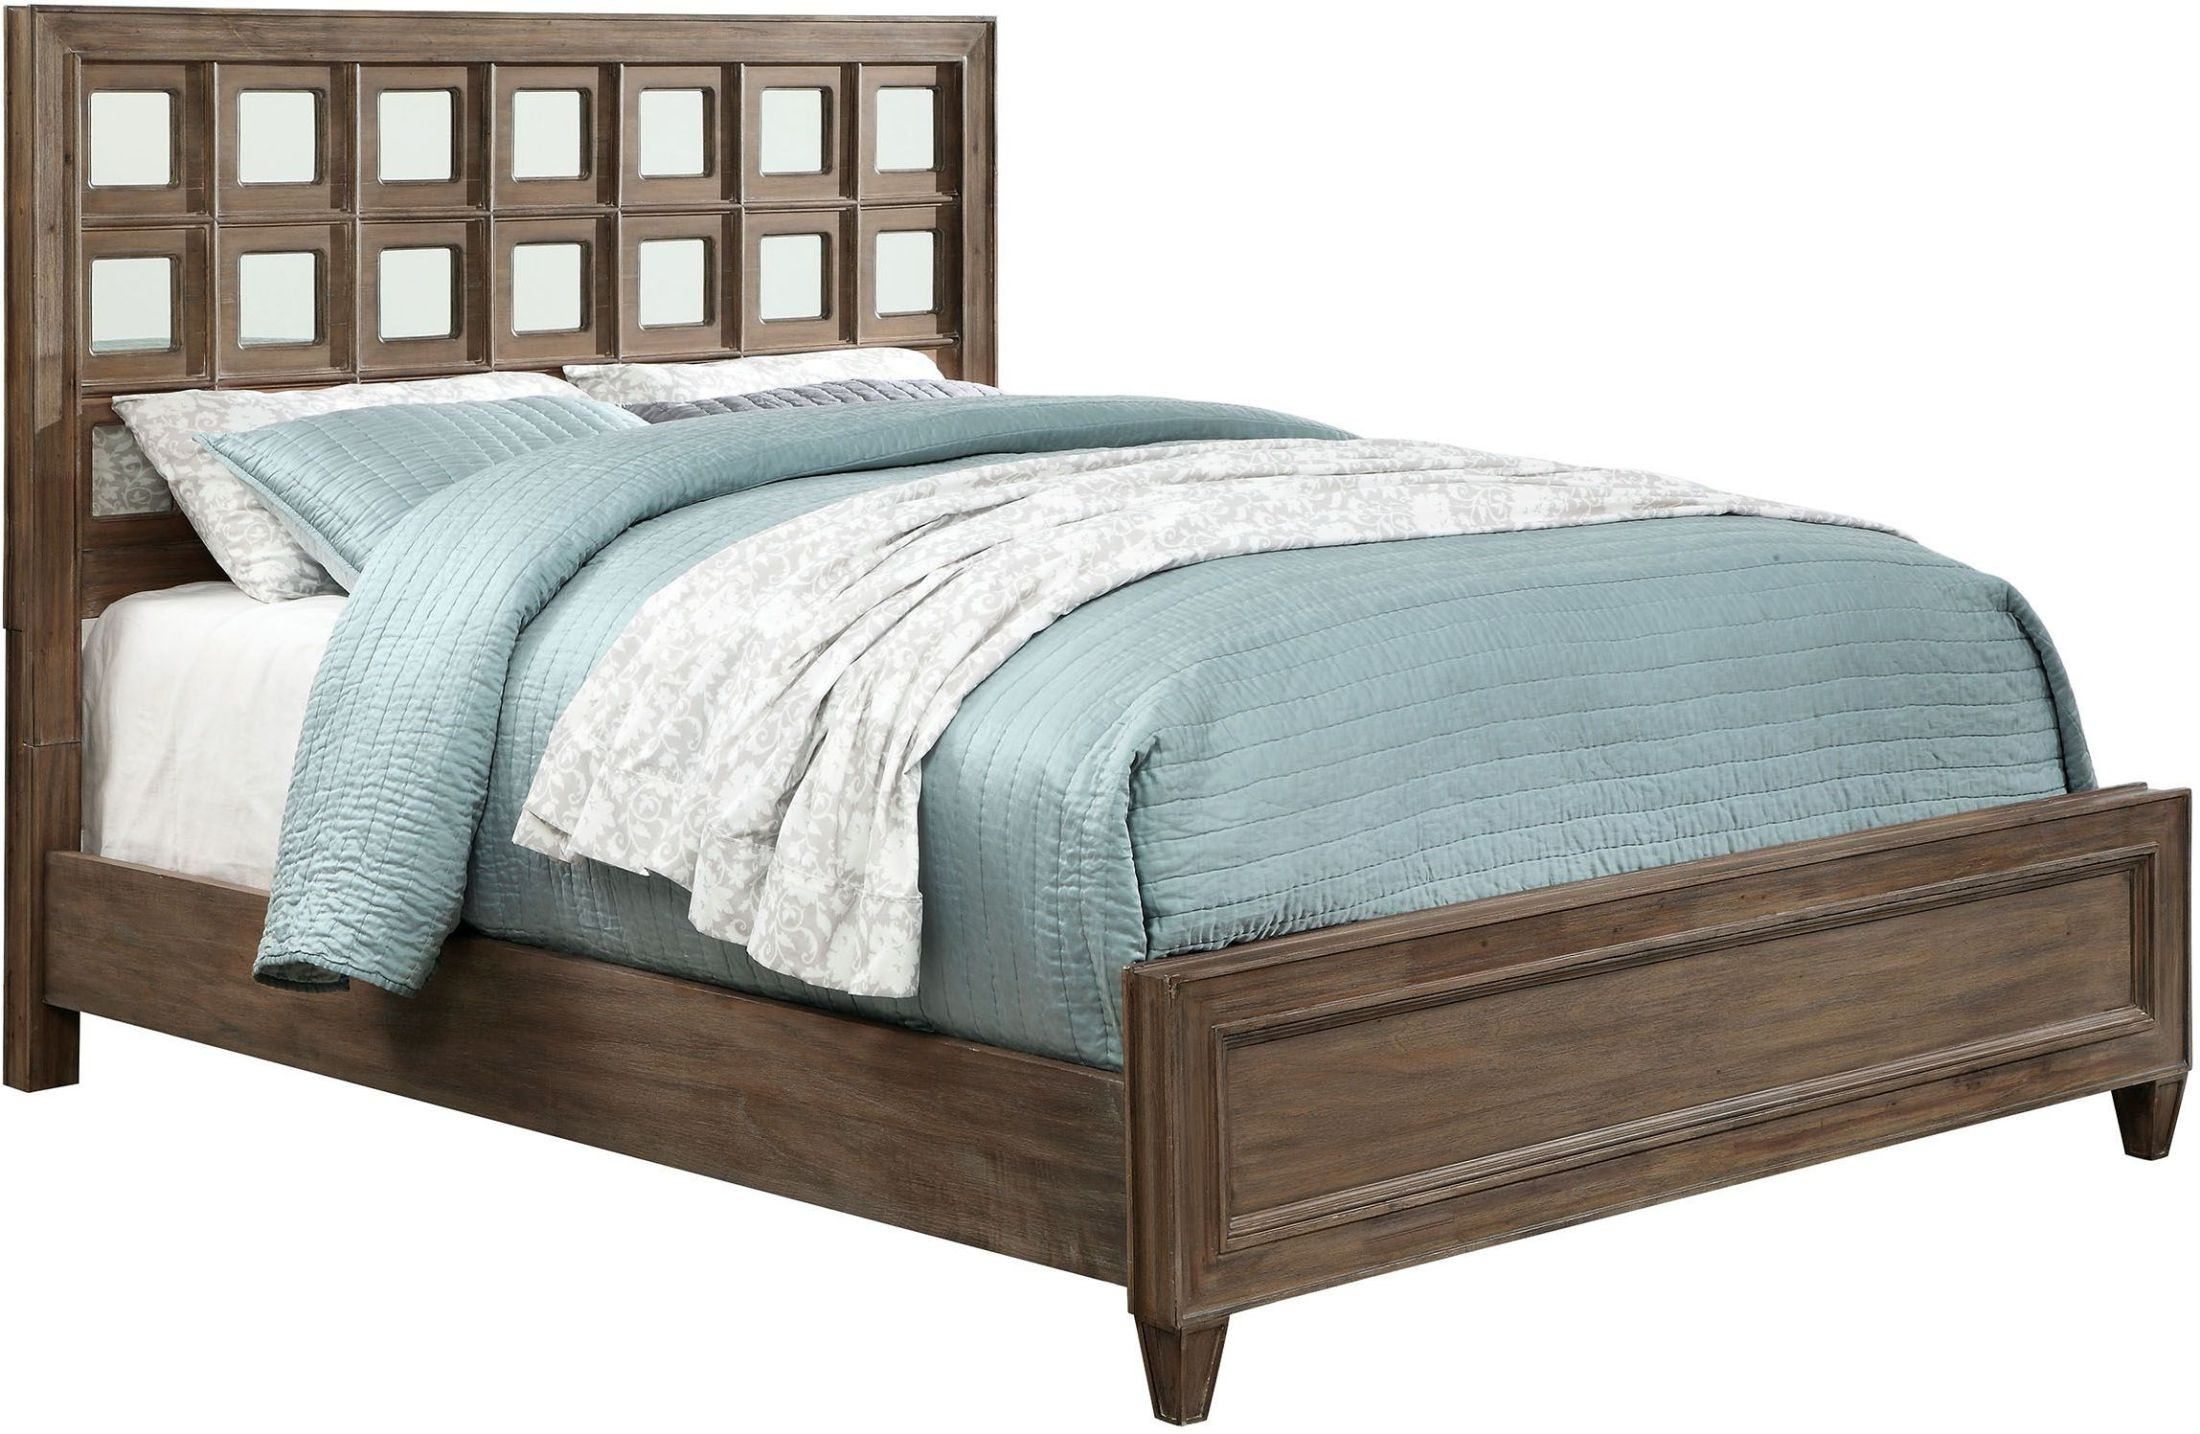 Frontera rustic oak cal king panel bed cm7586ck for Furniture of america king bed